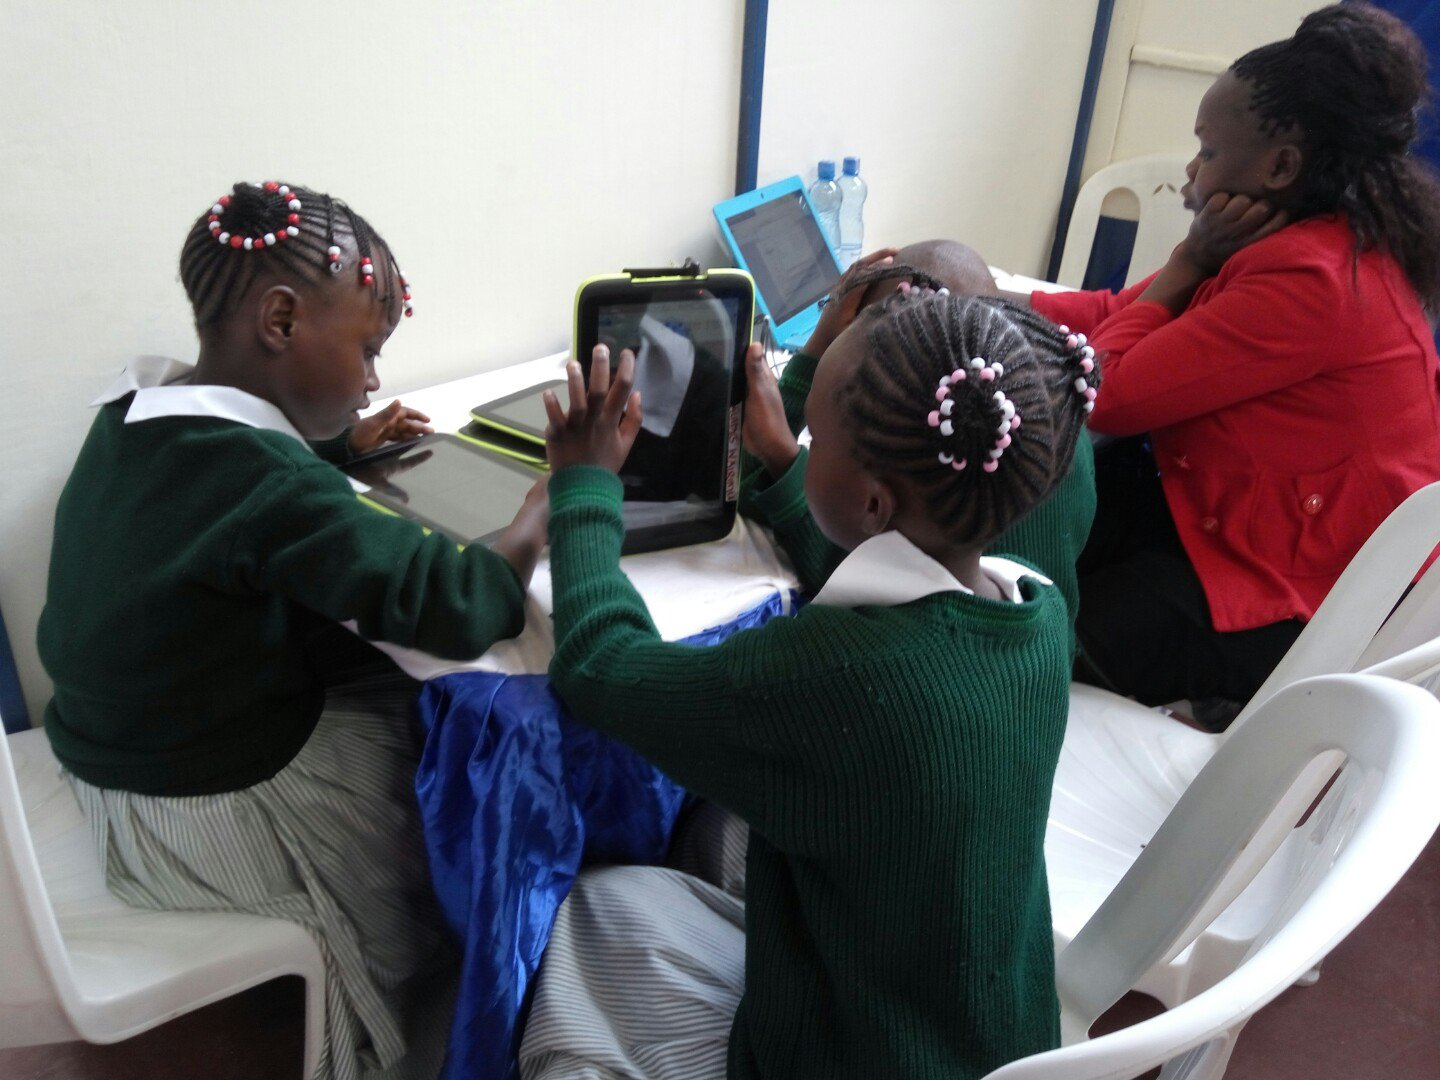 Students of Karumaine Primary School Nairobi testing the newly launched tablets by the Government of Kenya.